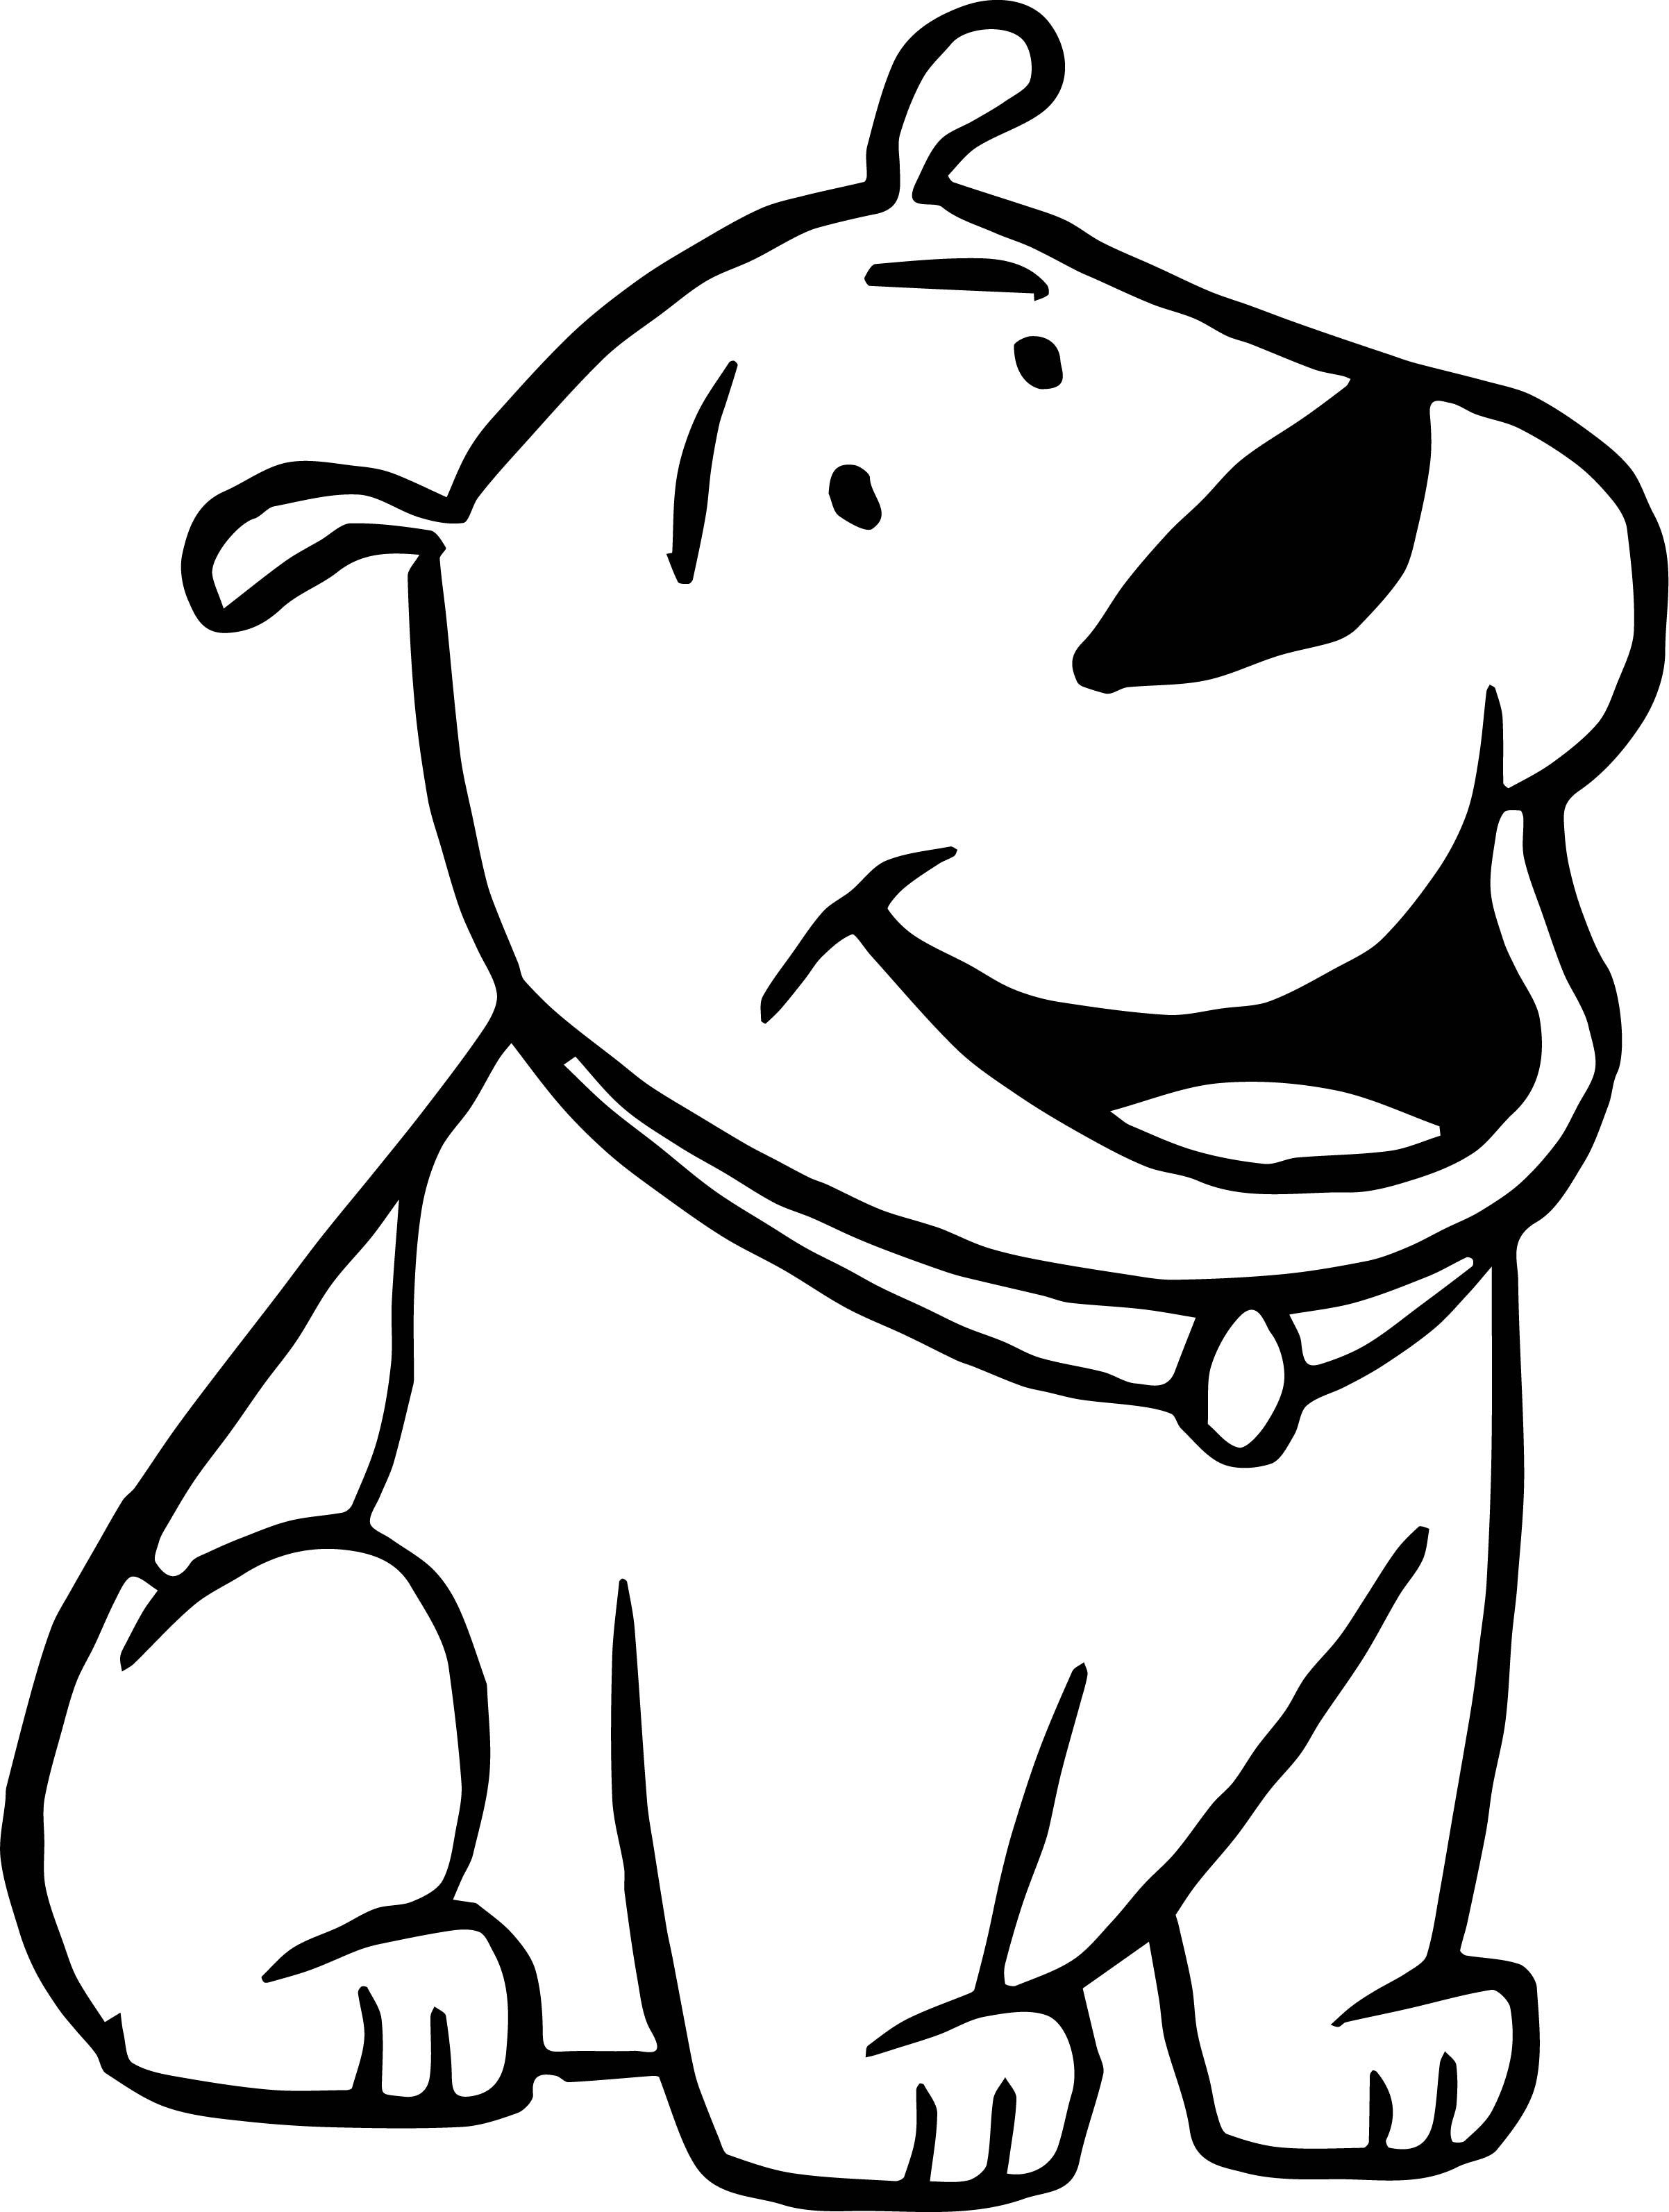 Small Dog Clifford The Big Red Dog Coloring Page | Wecoloringpage.com